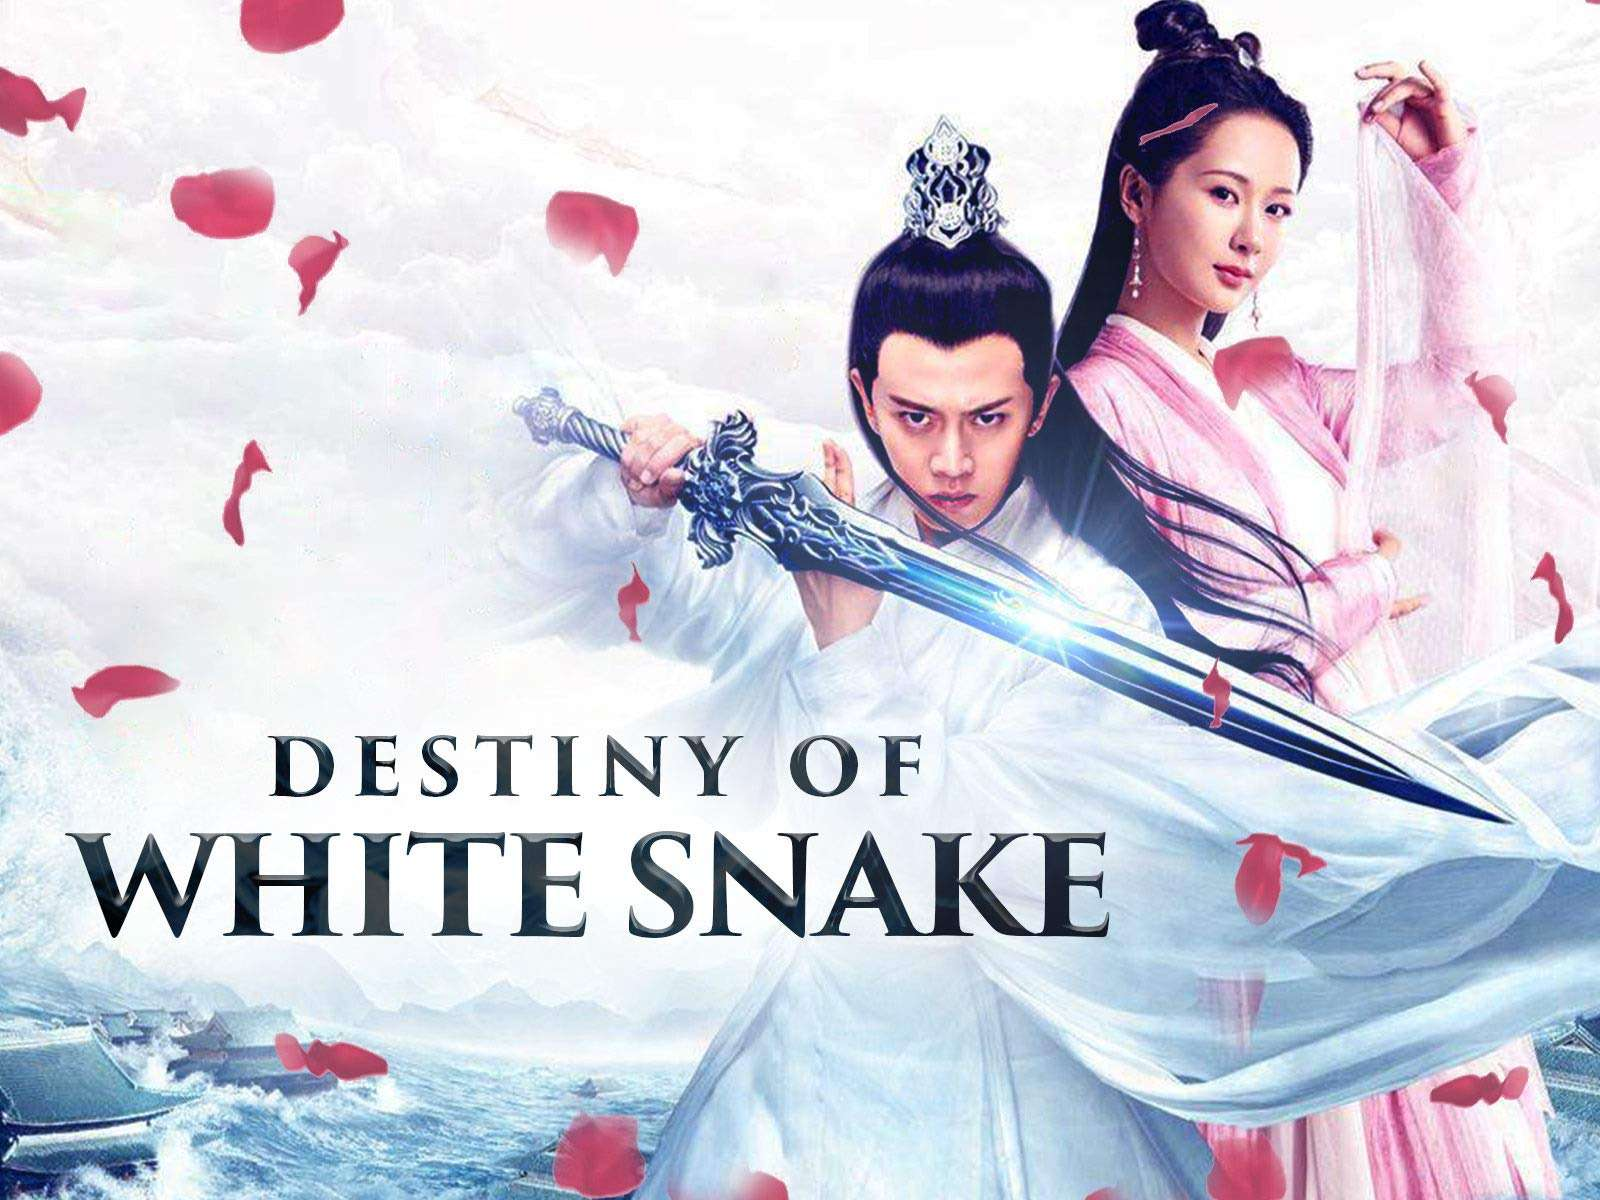 The Destiny of White Snake